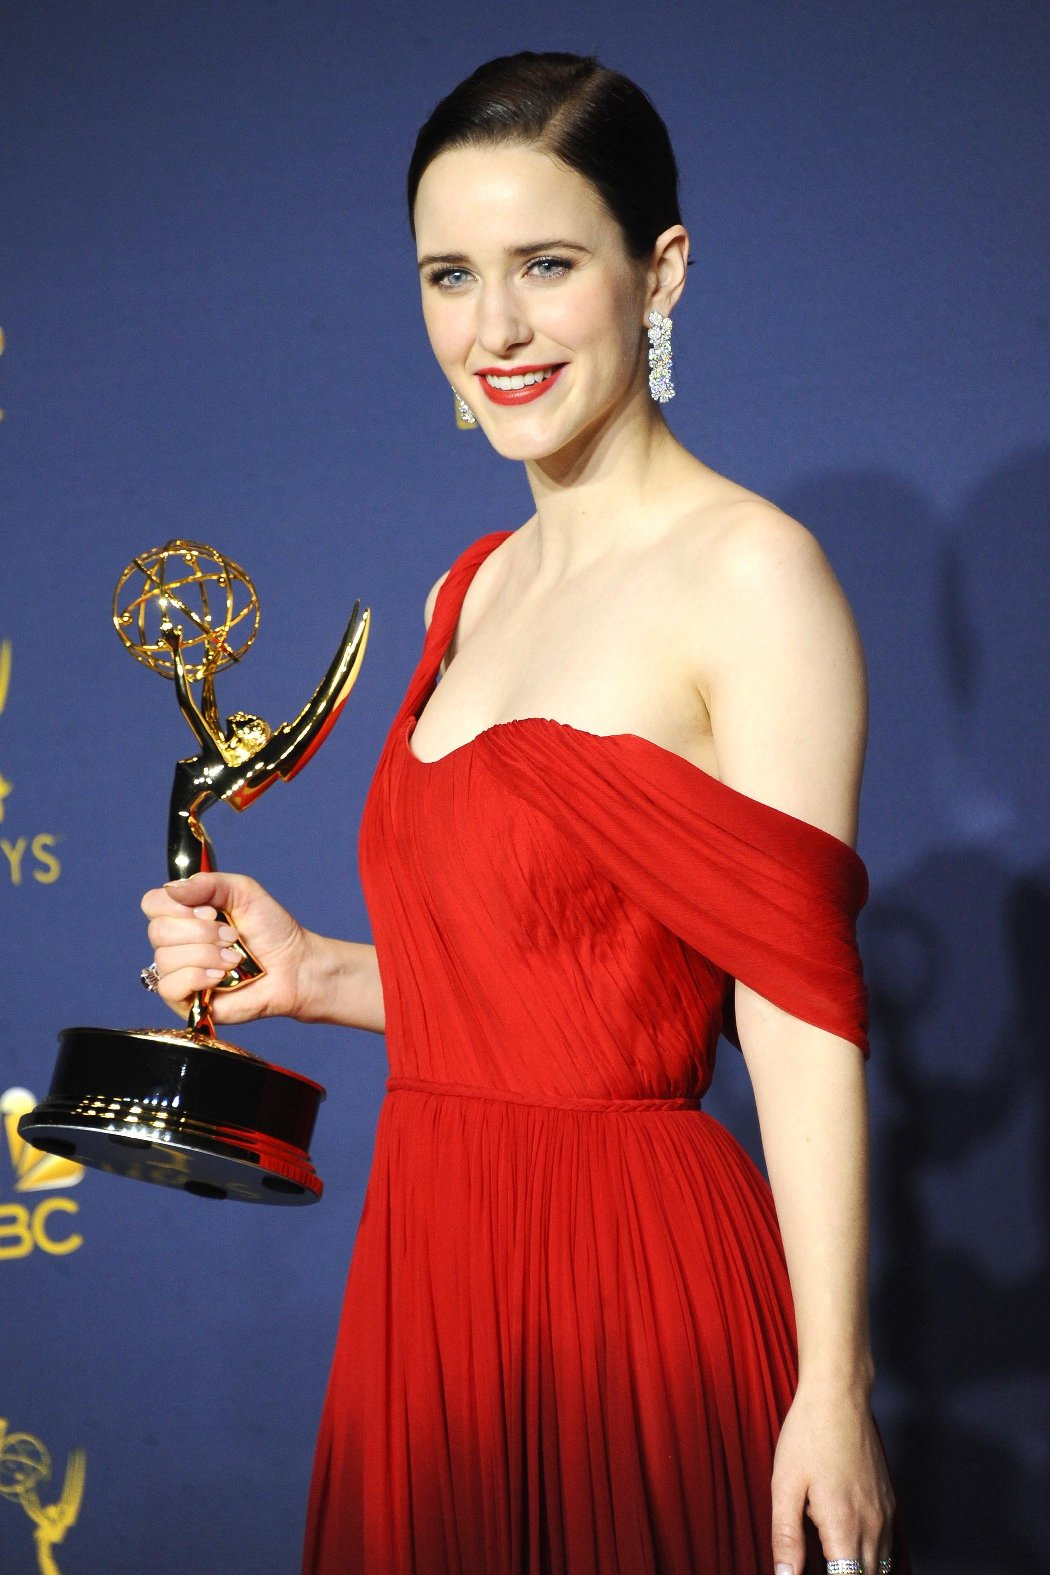 , Los Angeles, CA -20180917 - The 70th Primetime Emmy Awards Press Room, at Microsoft Theater  -PICTURED: Rachel Brosnahan -, Image: 387163936, License: Rights-managed, Restrictions: , Model Release: no, Credit line: Profimedia, INSTAR Images